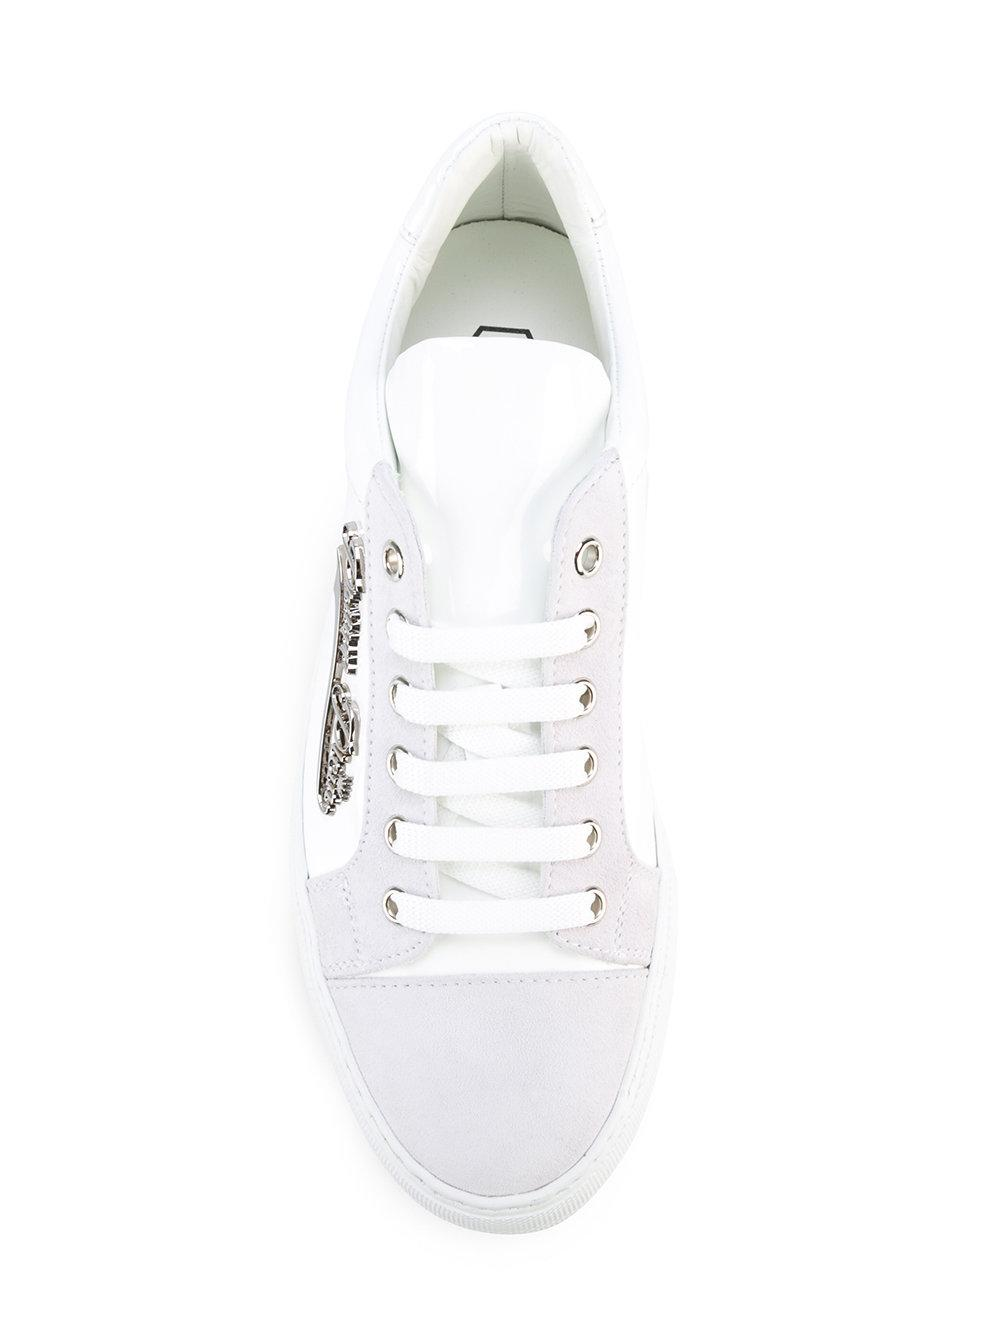 Philipp Plein Leather Dory Low-top Platform Sneakers in White